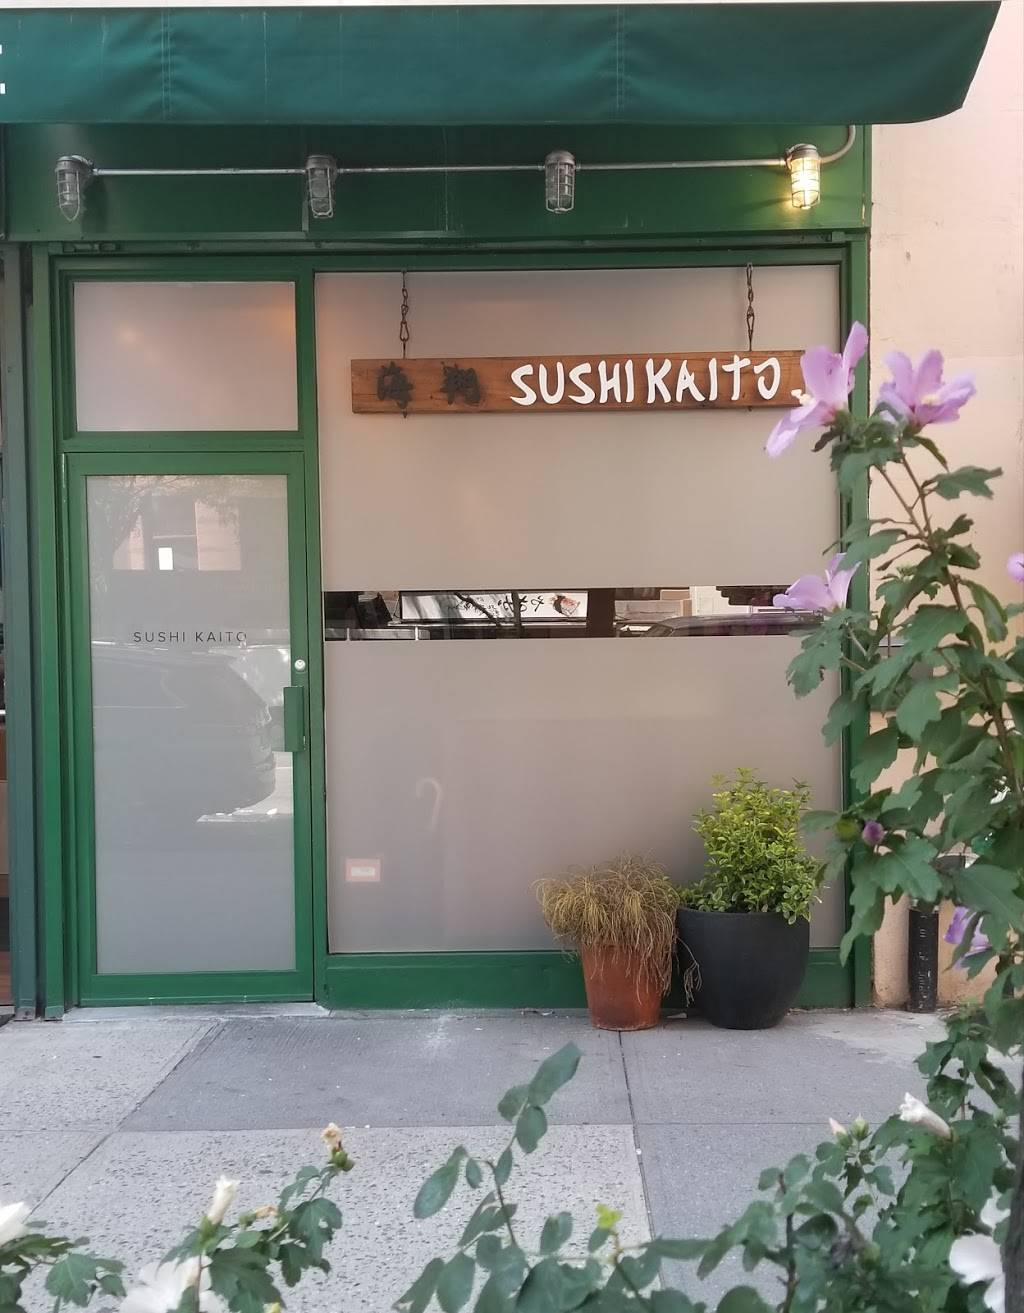 Sushi Kaito | restaurant | 244 W 72nd St, New York, NY 10023, USA | 2127991278 OR +1 212-799-1278